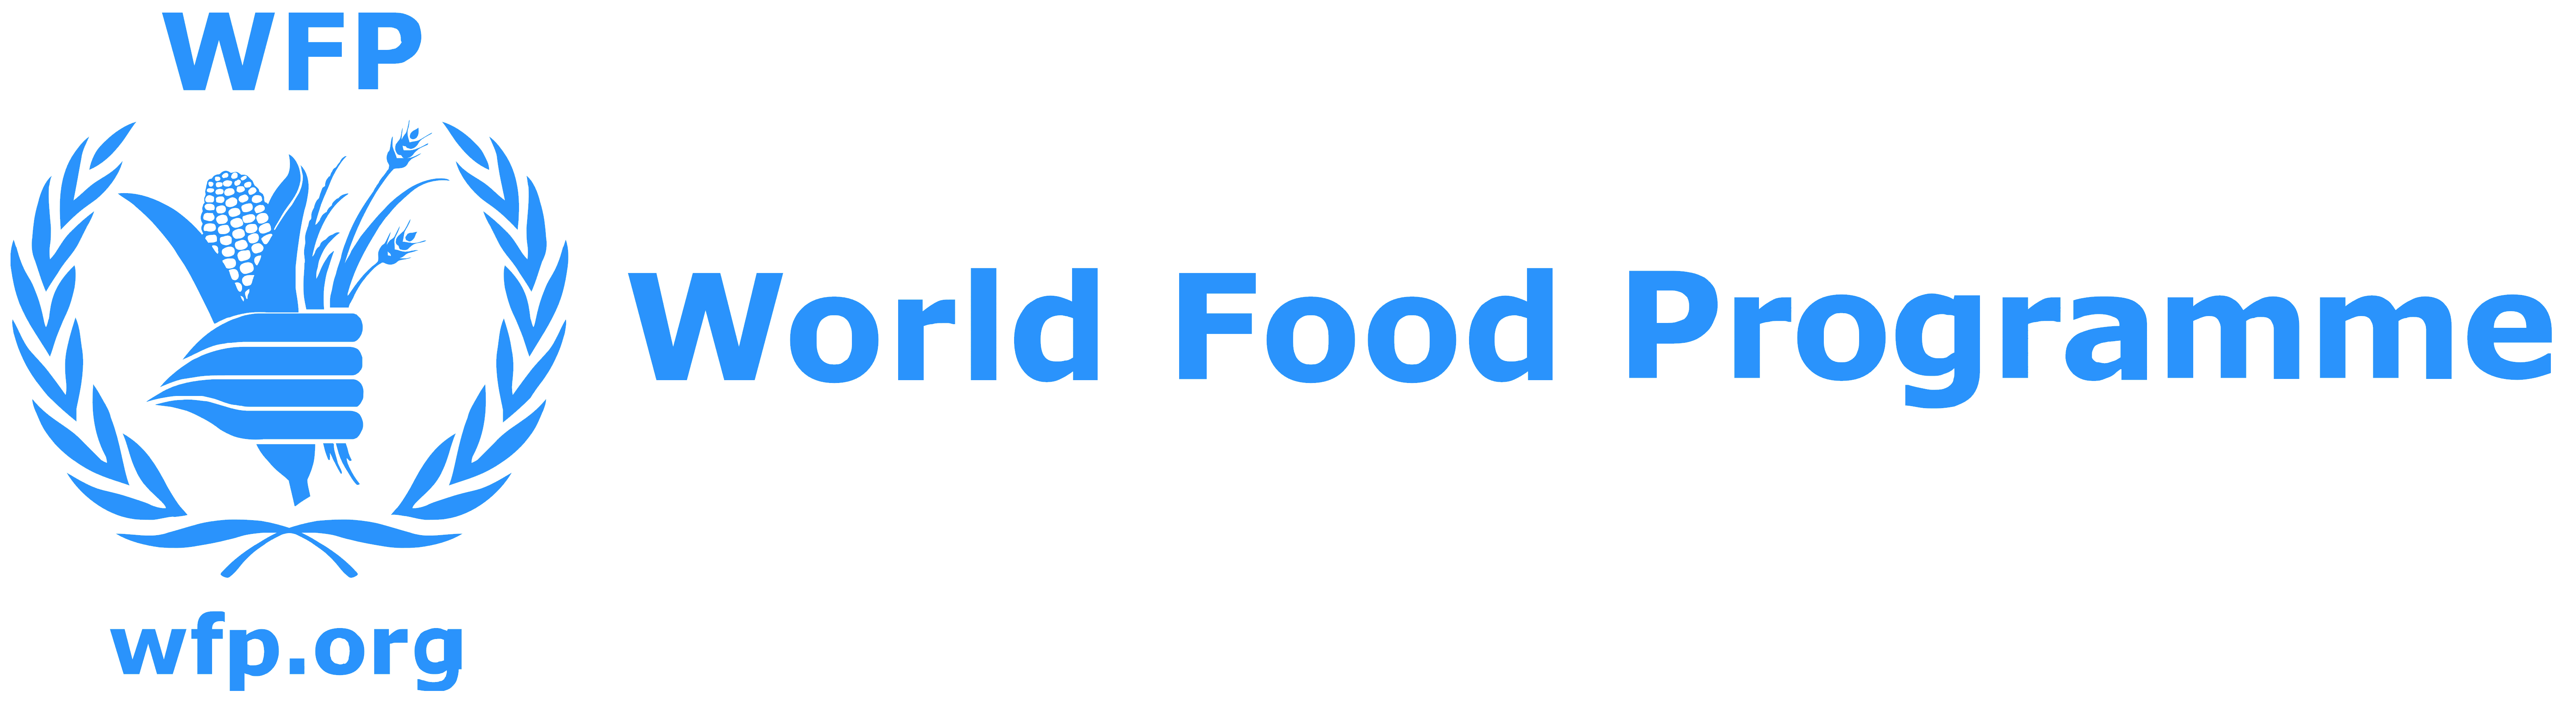 WFP launches talent pool for global professionals | Devex